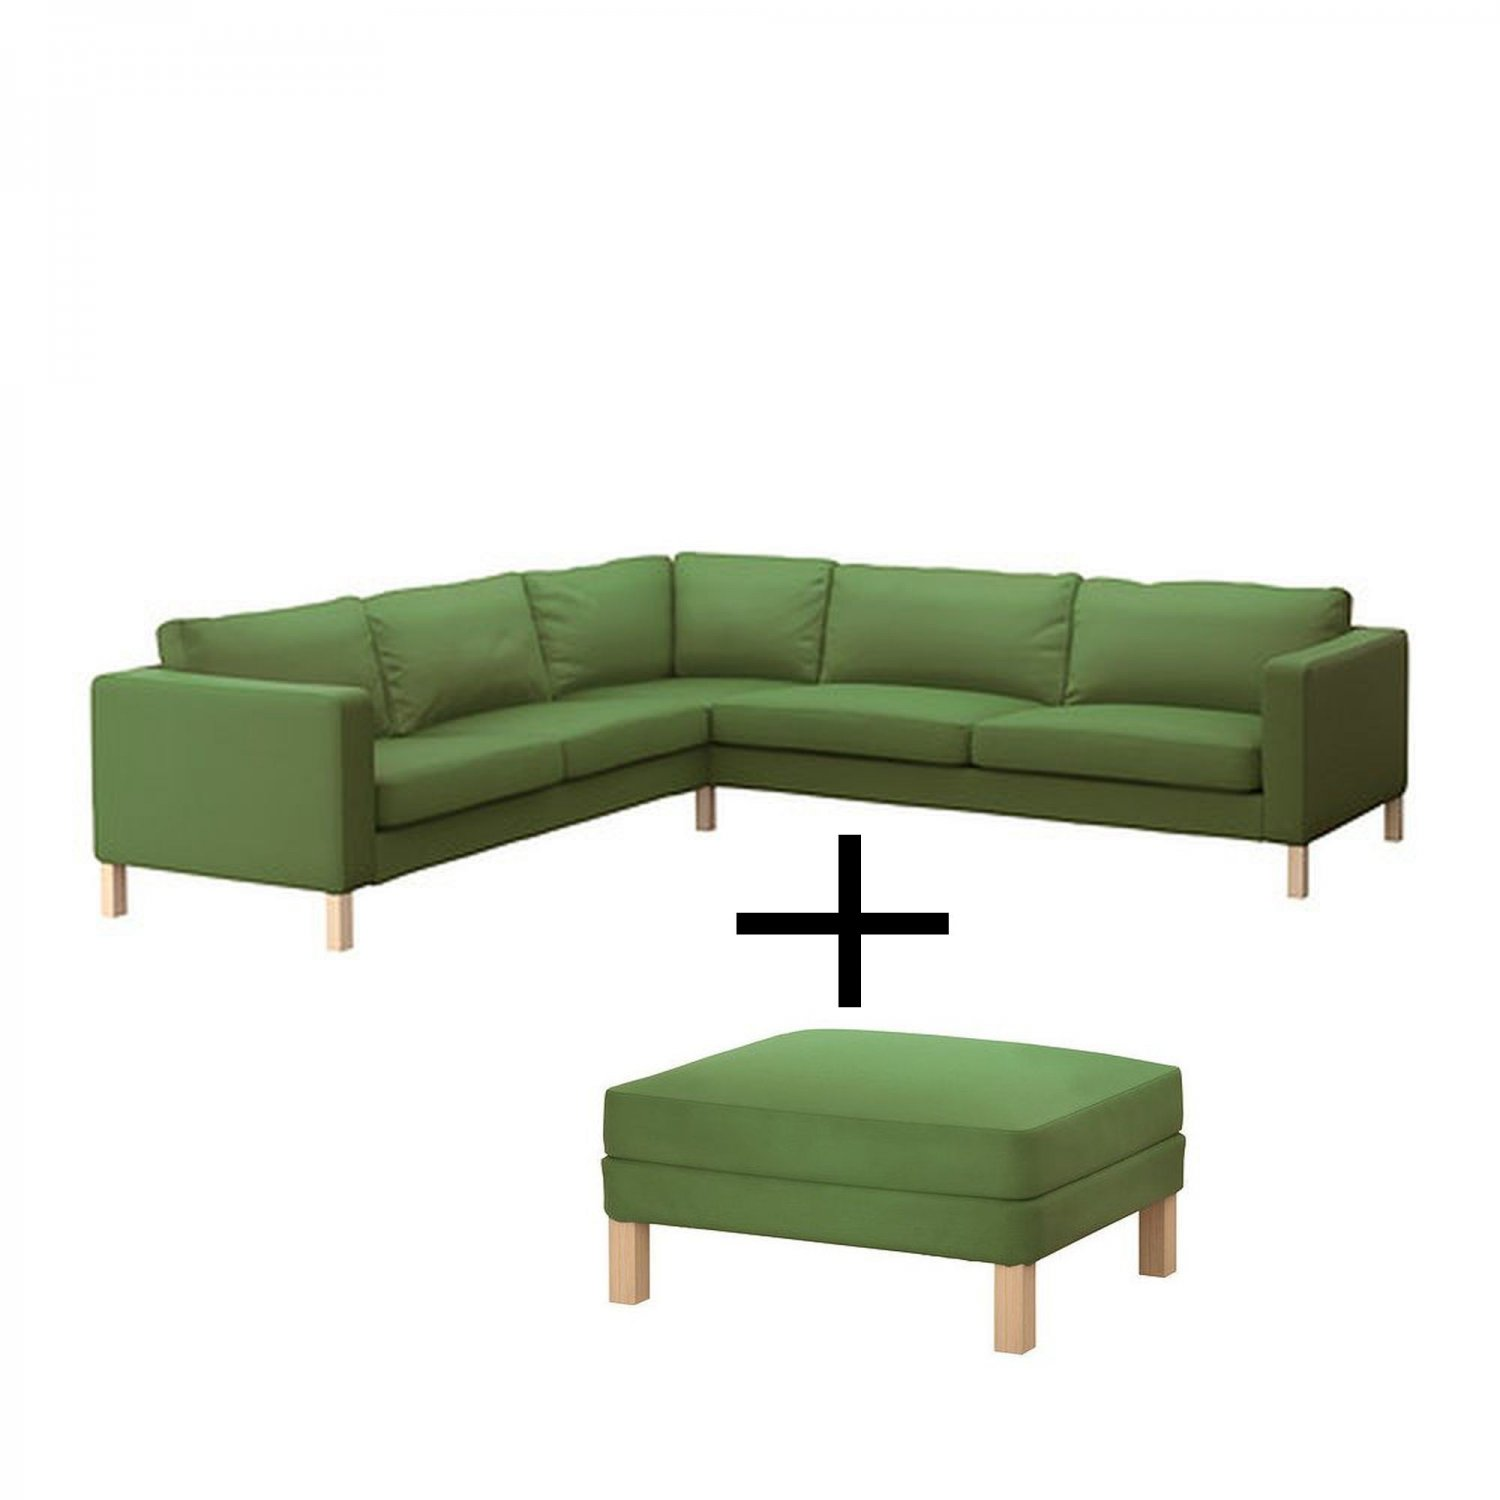 Cover For Karlstad Sofa: Ikea KARLSTAD Corner Sofa And Footstool SLIPCOVER Cover